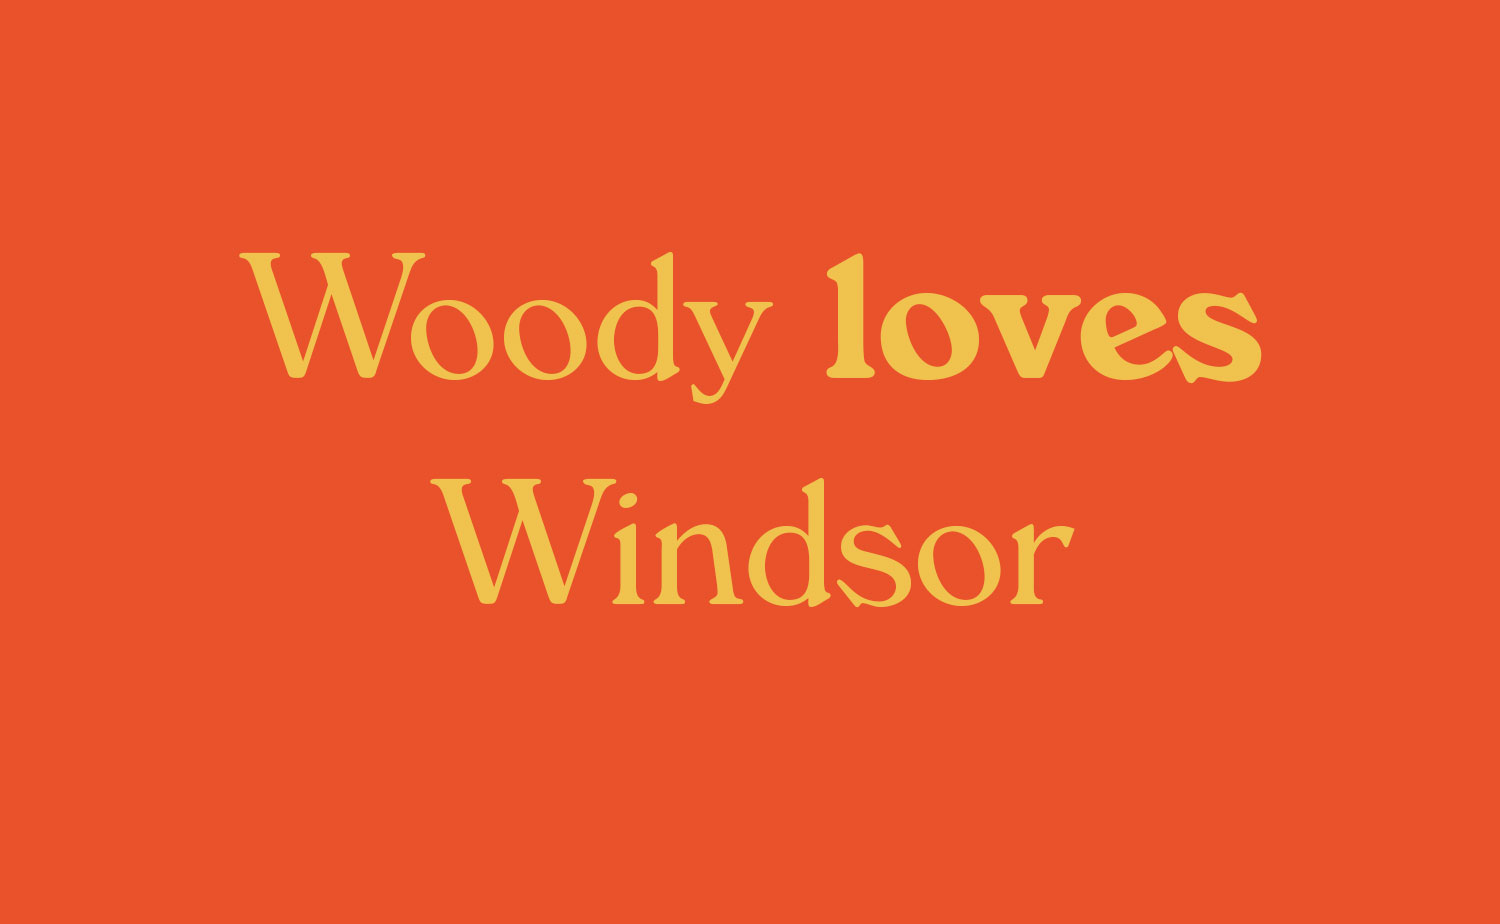 biotypo windsor woody allen